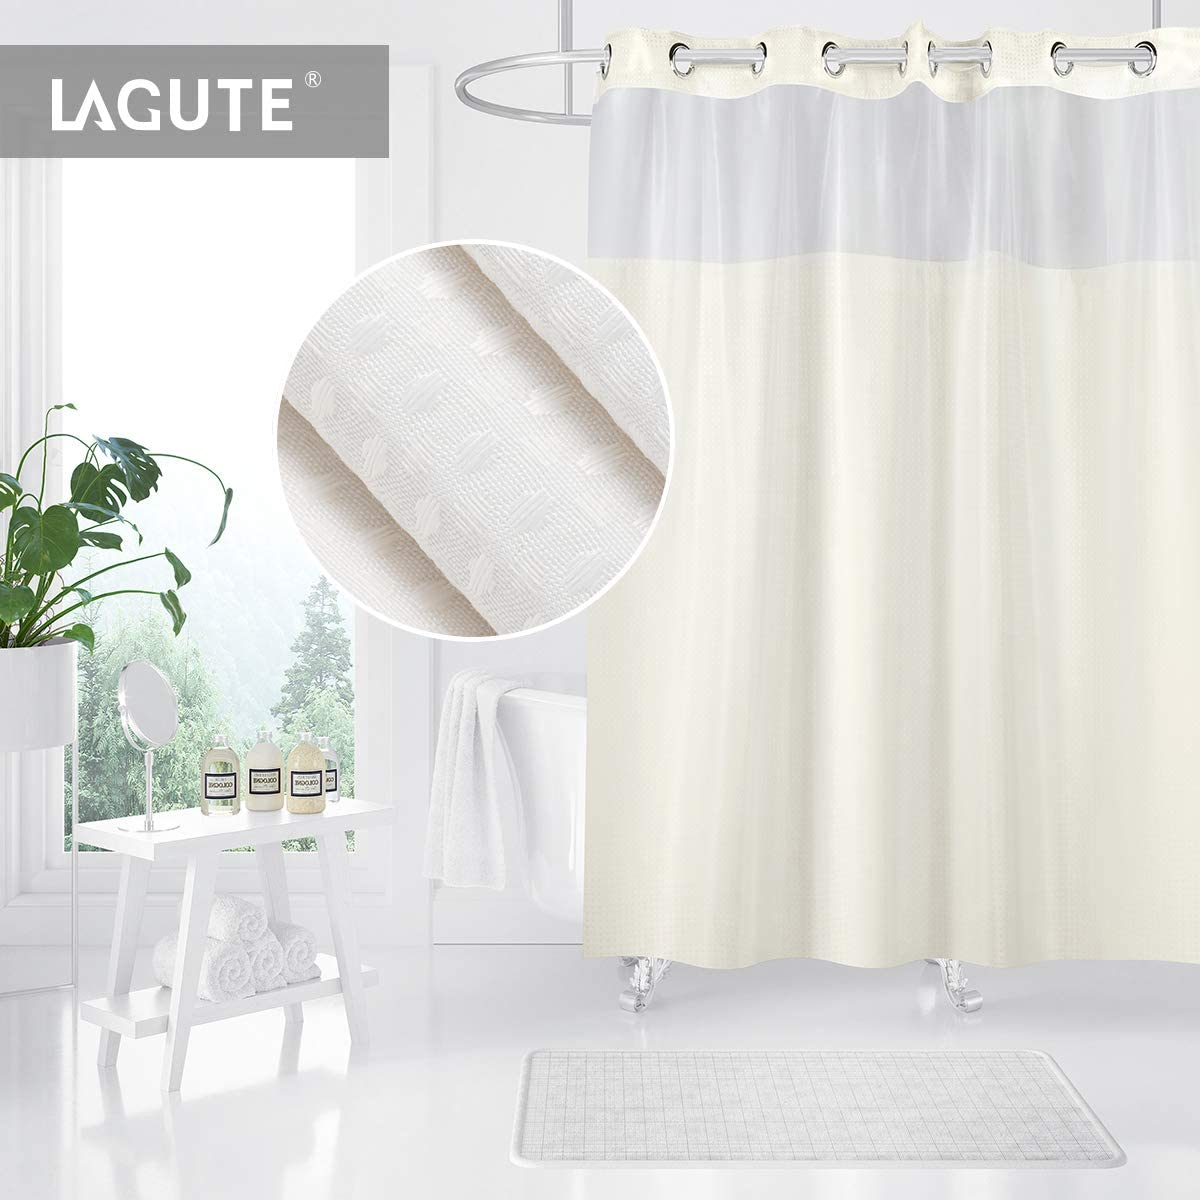 NO SNAP IN LINER Hookless Shower Curtain by COMFECTO, Cream Machine Washable 70x74 Inch Anti Bacterial Mold Mildew Resistant Hotel Bathroom Curtains with Light-Filtering Mesh Screen and Magnets